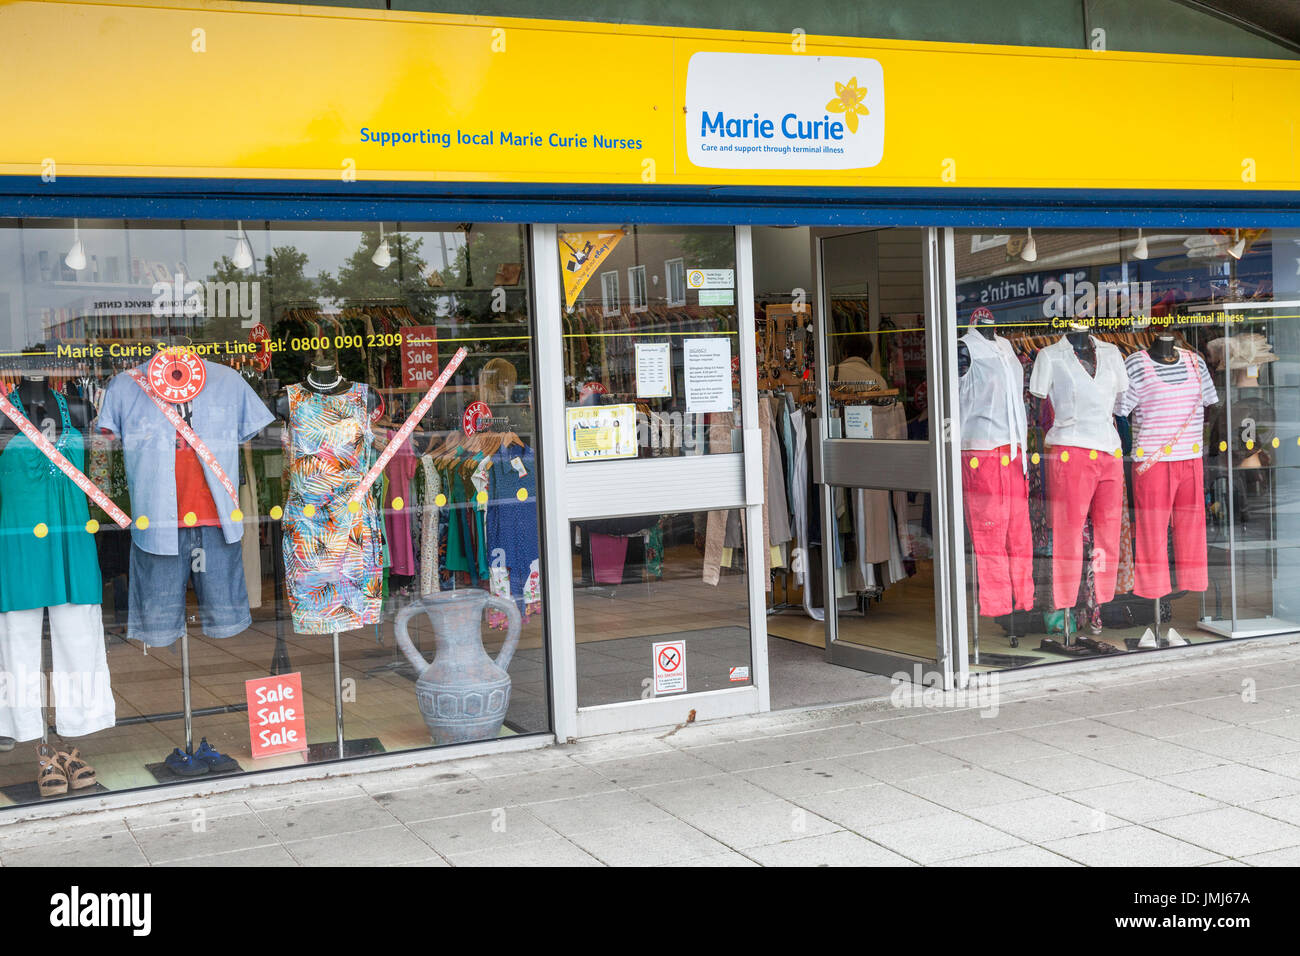 Marie Curie charity shop in Billingham,England,UK - Stock Image